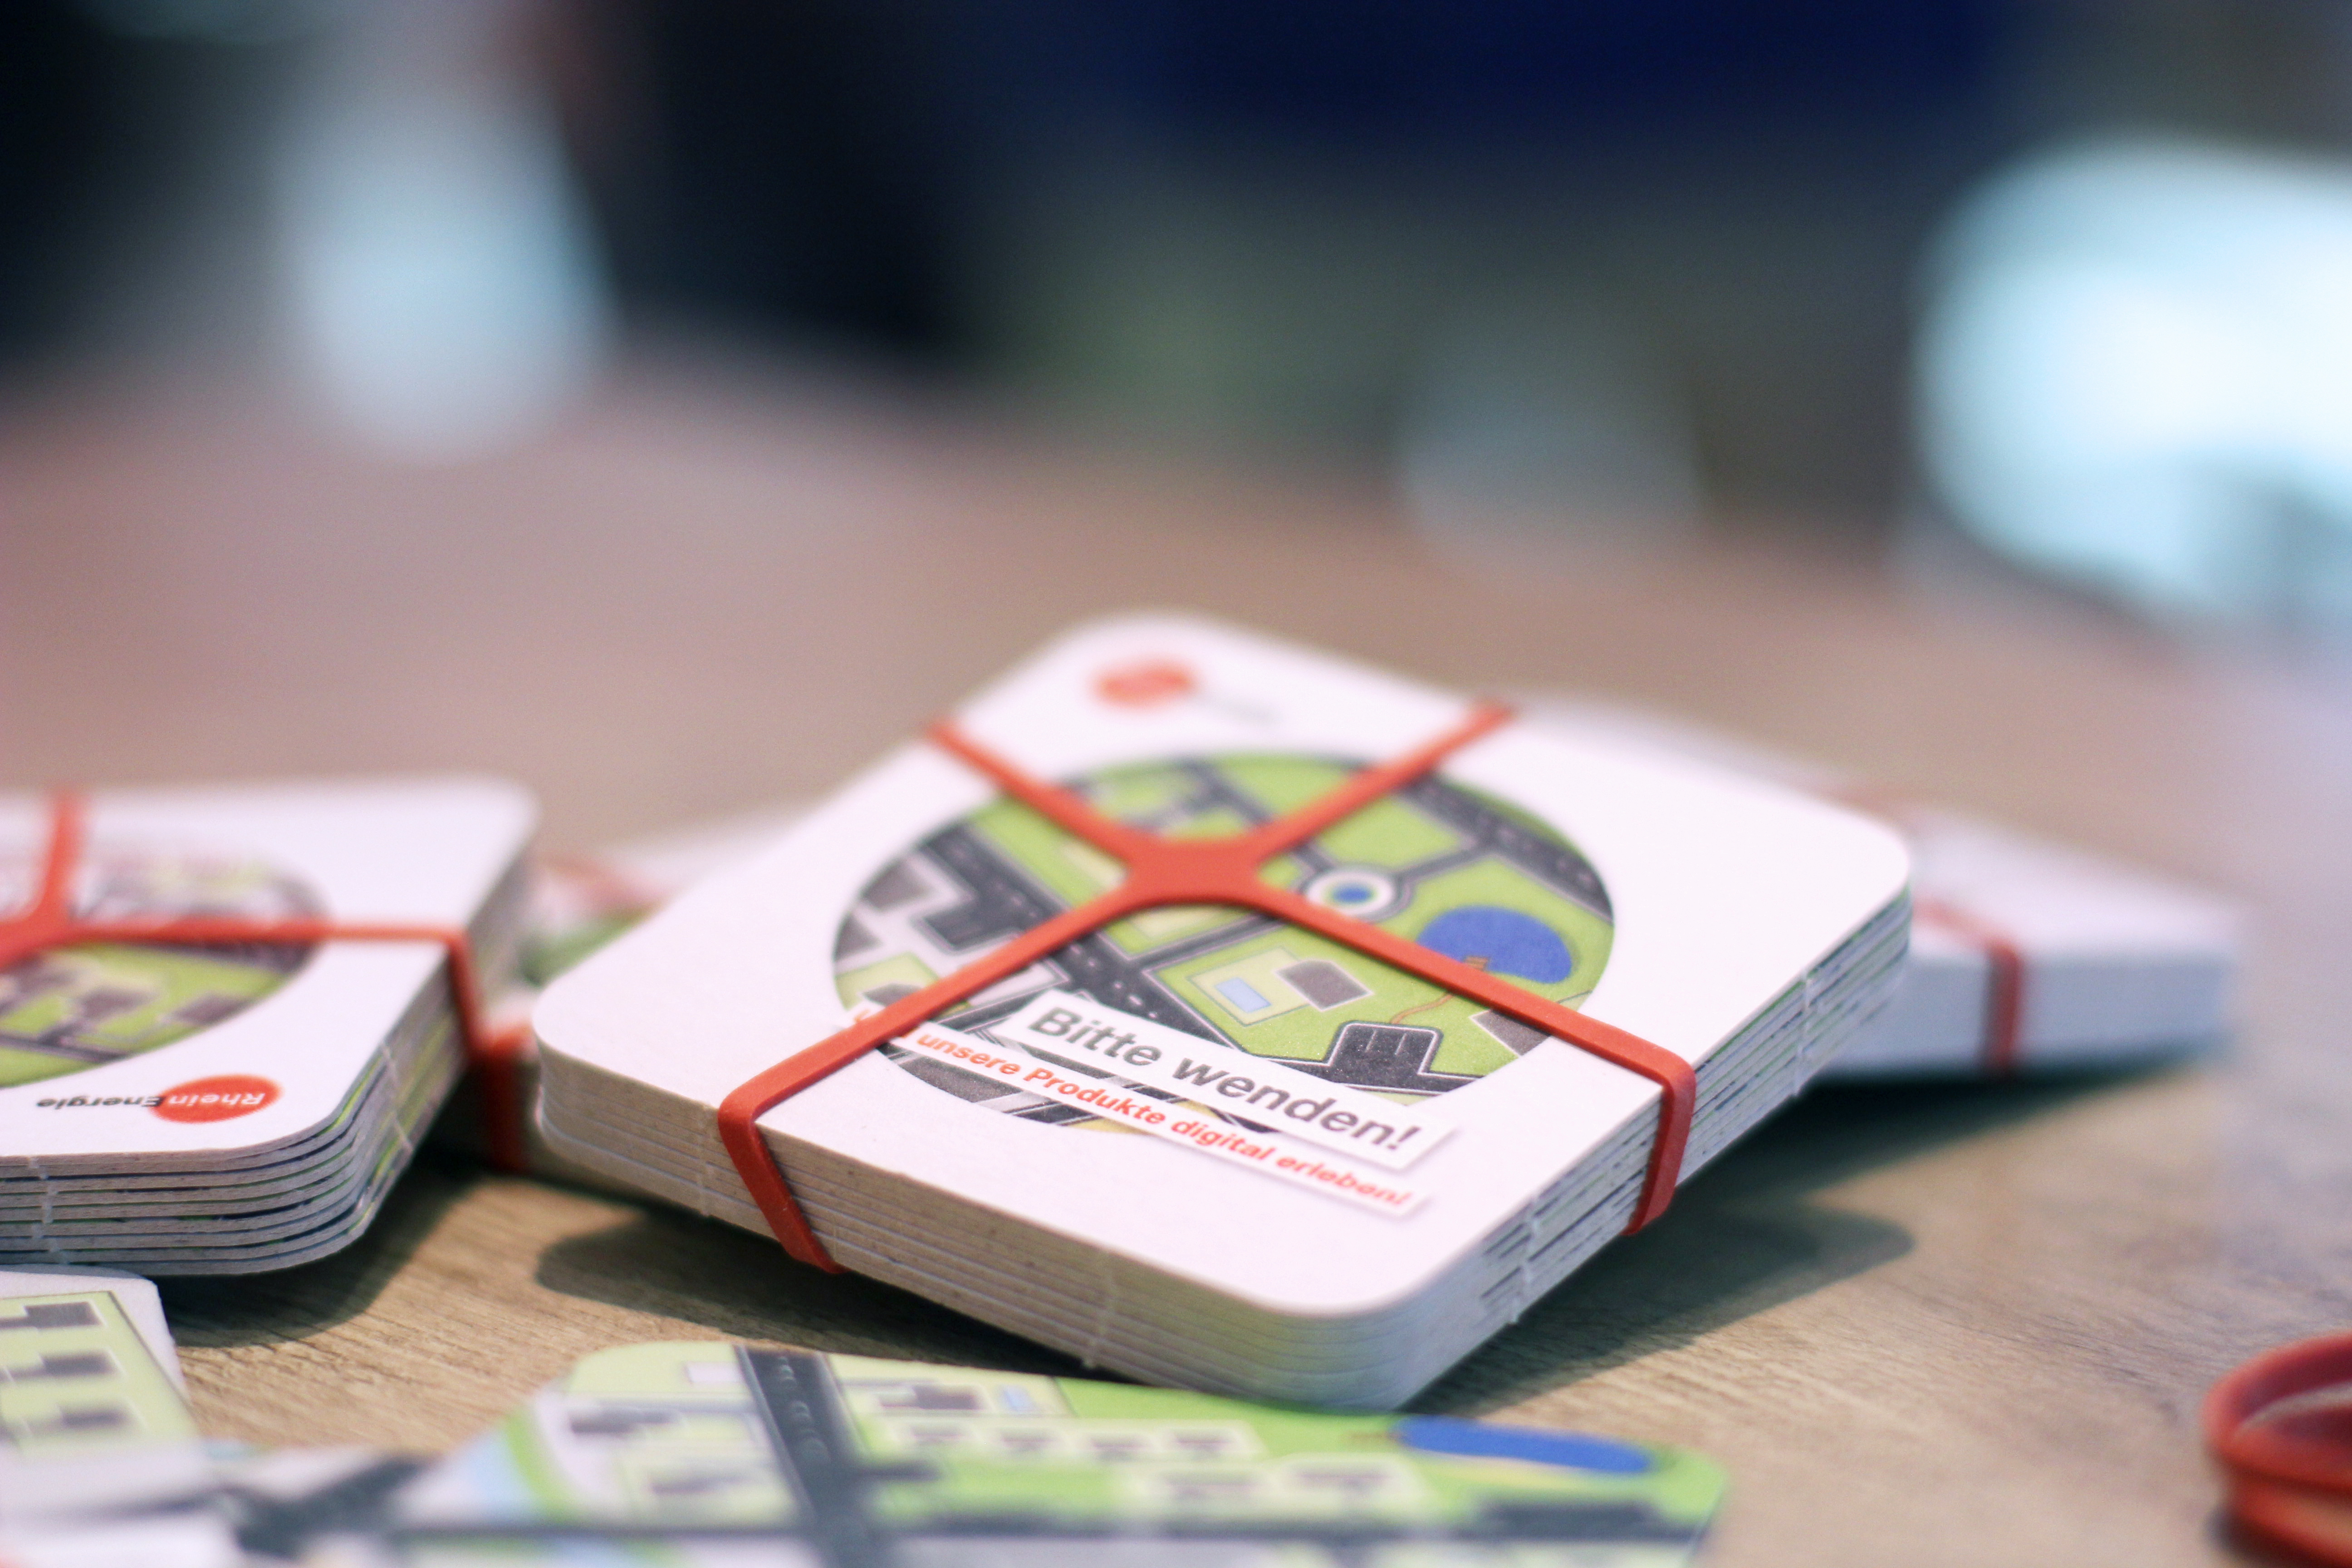 Bundled Beermats with RheinEnergie Illustration